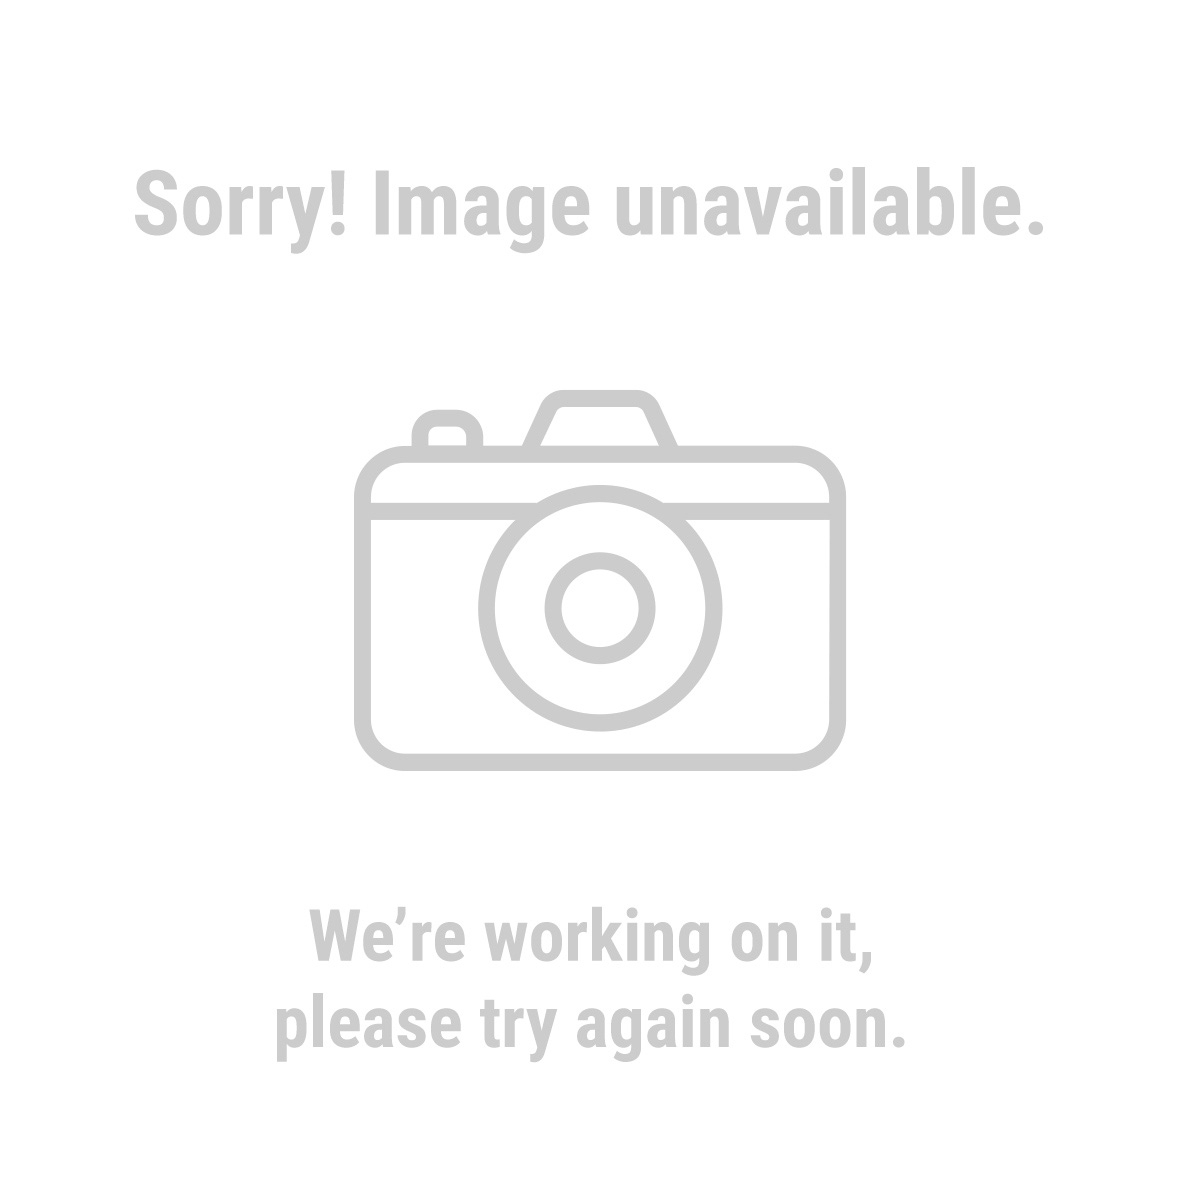 HFT 69187 15 ft. 2 in. x 19 ft. 6 in. Blue All Purpose/Weather Resistant Tarp